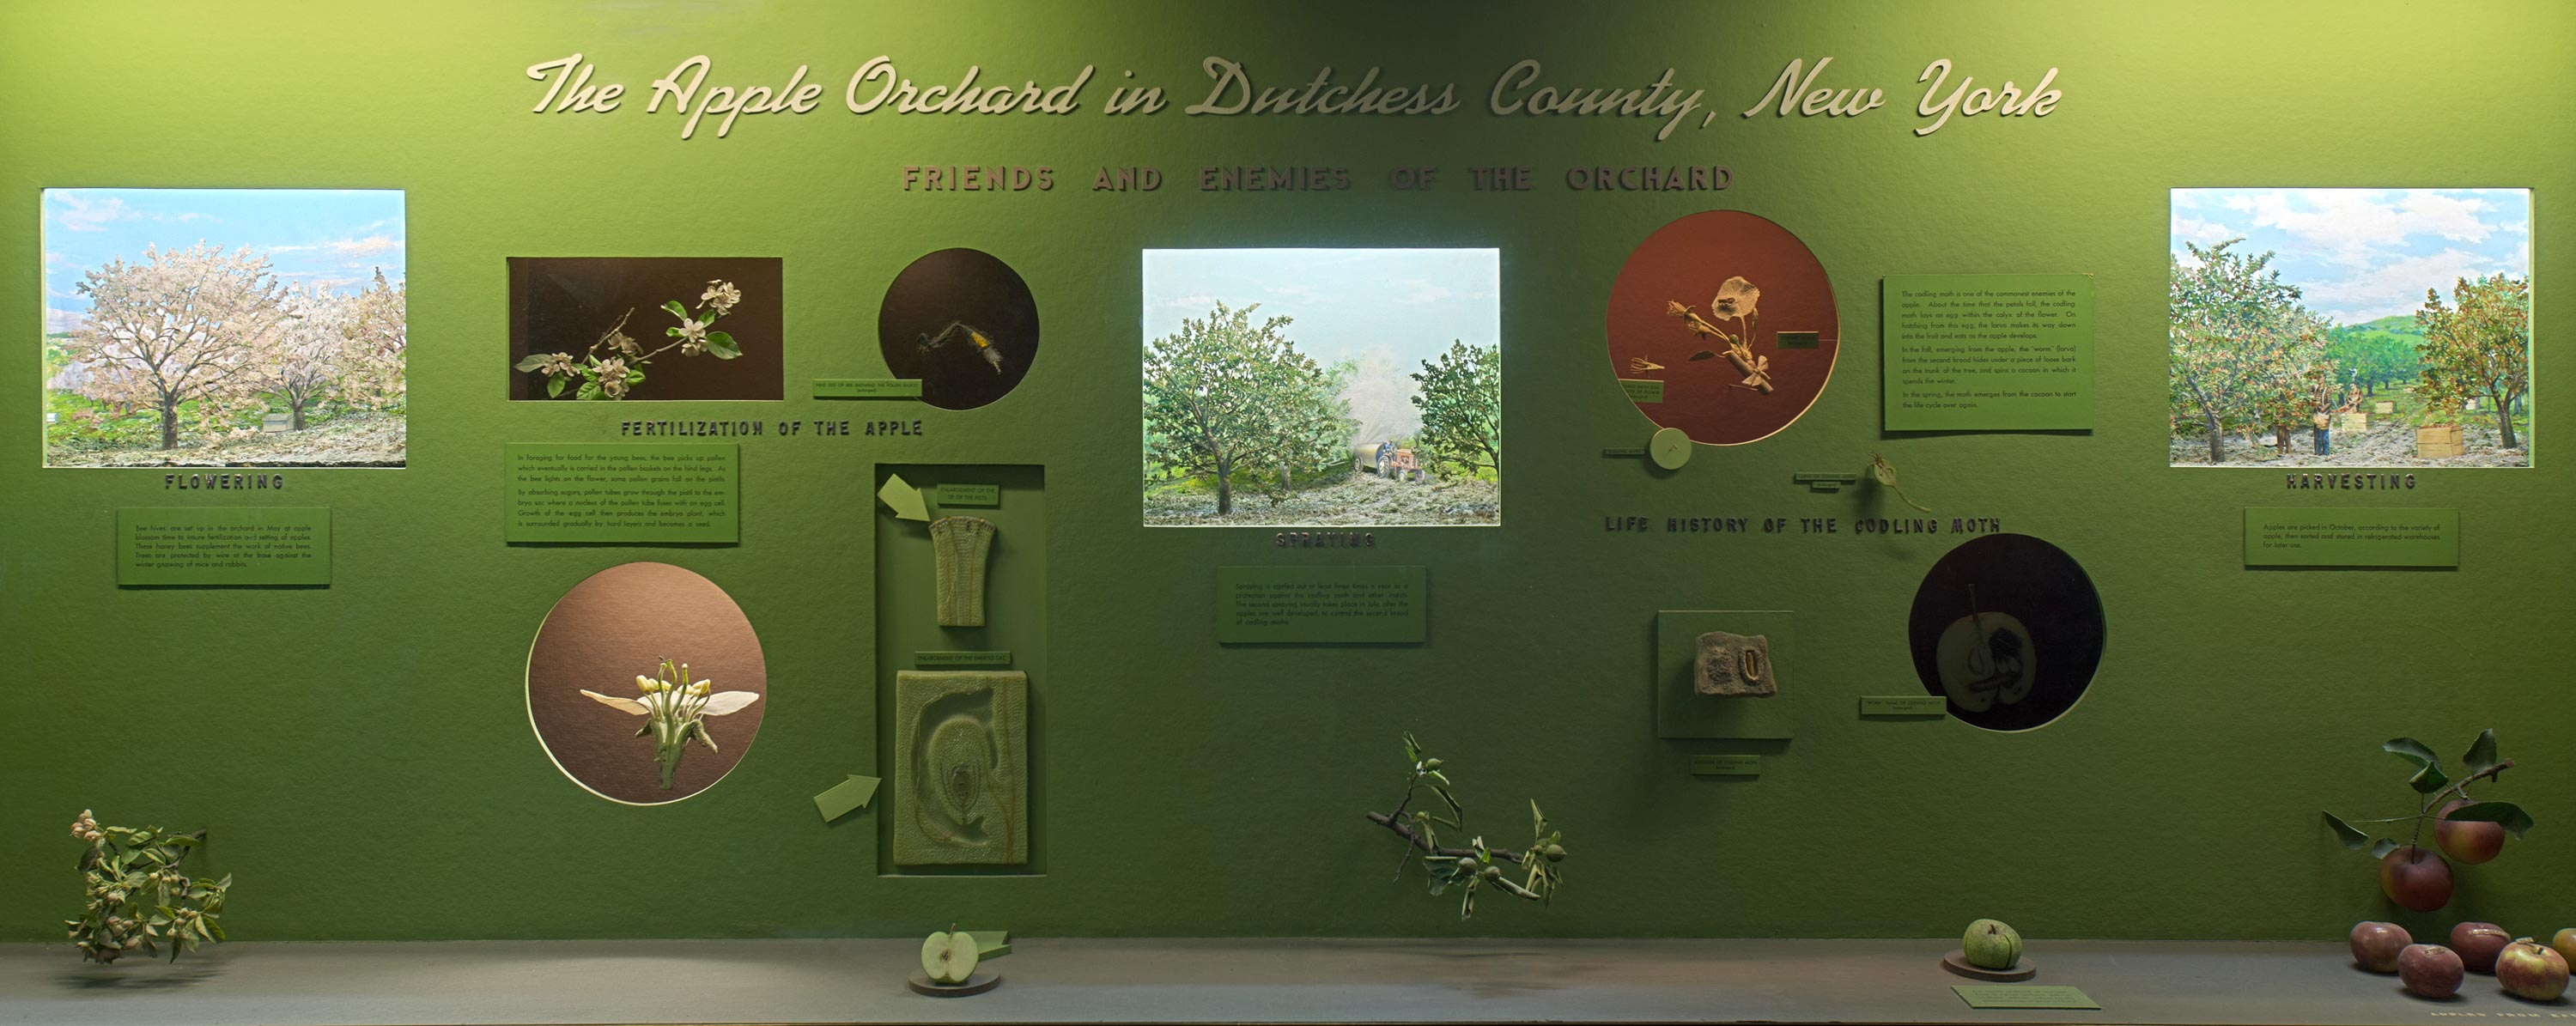 Museum case containing models and dioramas illustrating the varieties, reproduction, spra and pests of the apple orchard in Dutchess County, New York.